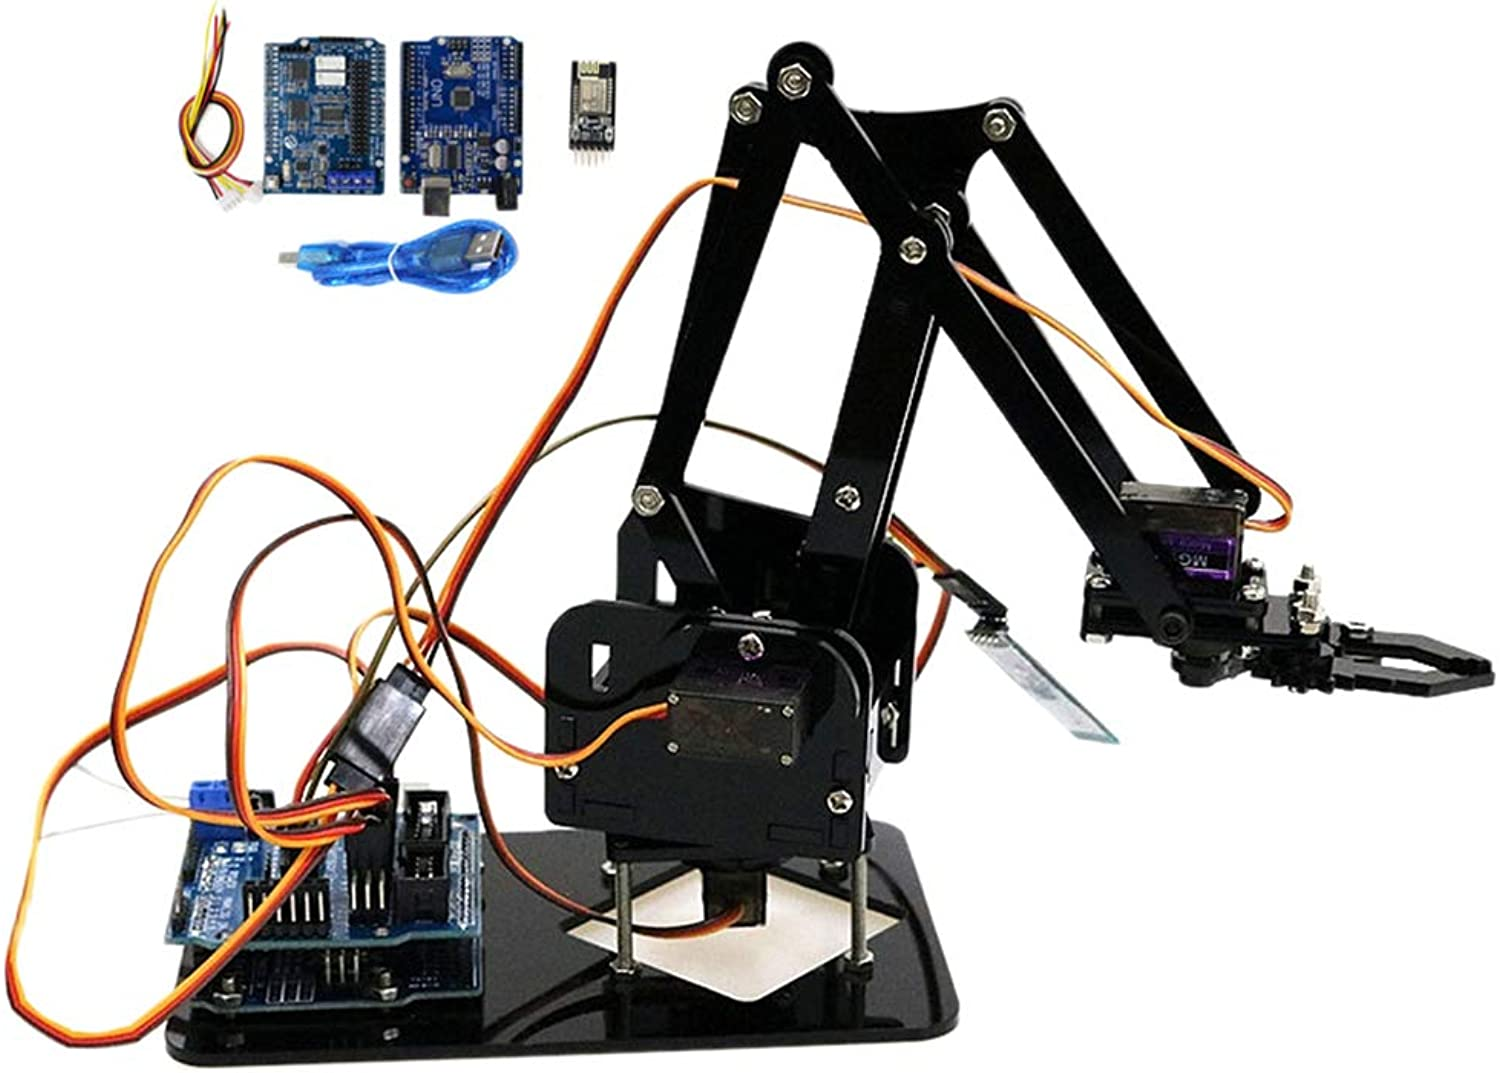 MagiDeal WiFi Control Kit Hot Smart Robot Acrylic 4 Degree of Freedom Mechanical Arm Kits Students Study